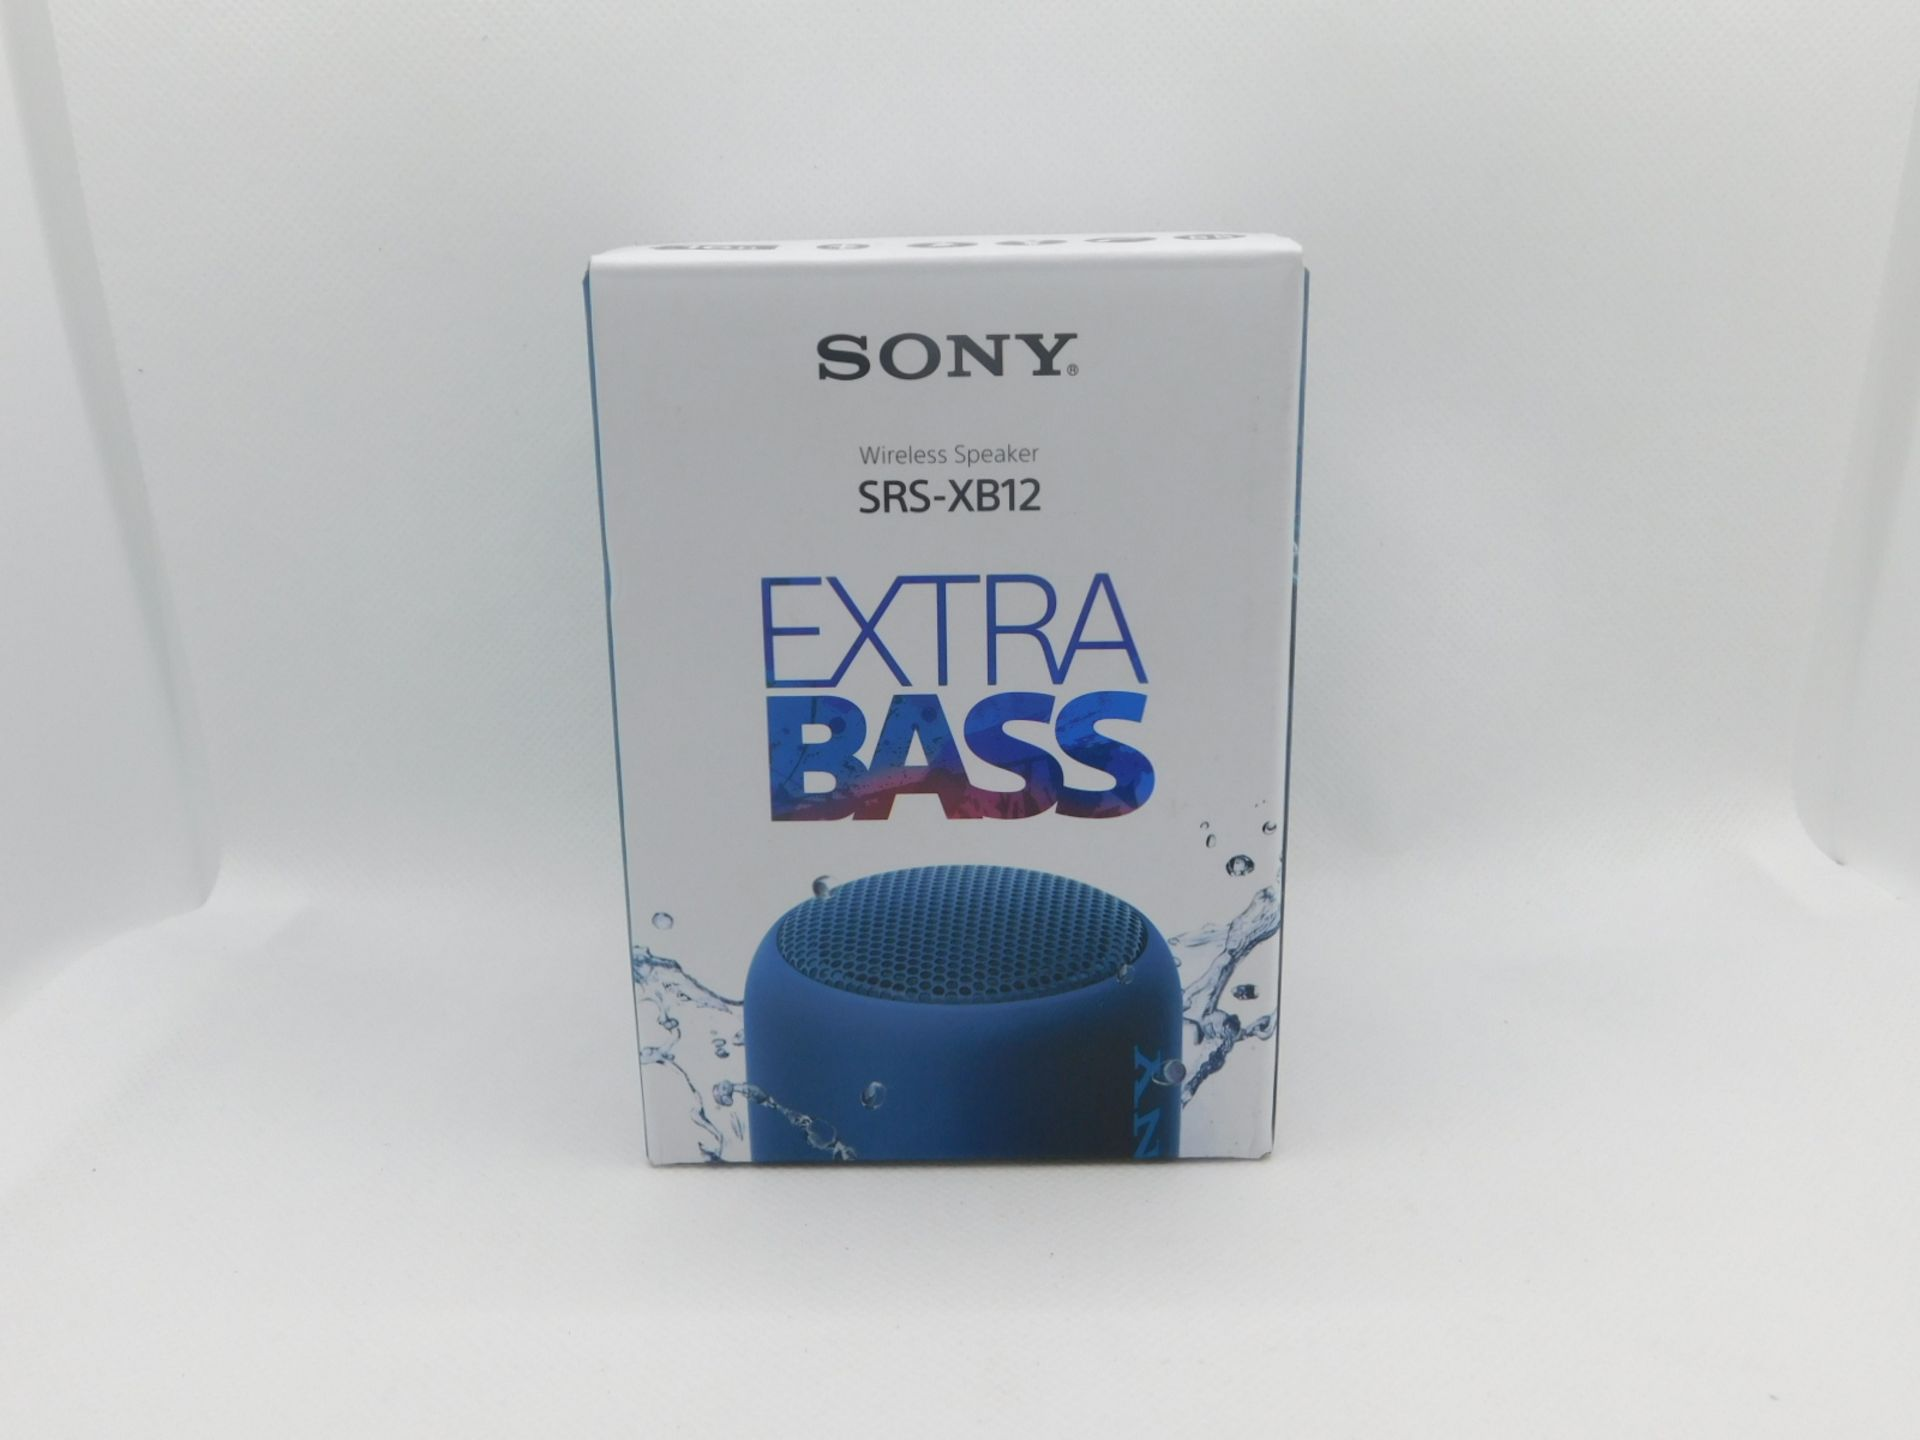 1 BOXED SONY SRS-XB12 EXTRA BASS WIRELESS BLUETOOTH SPEAKER RRP £59.99 (POWERS ON WORKING)